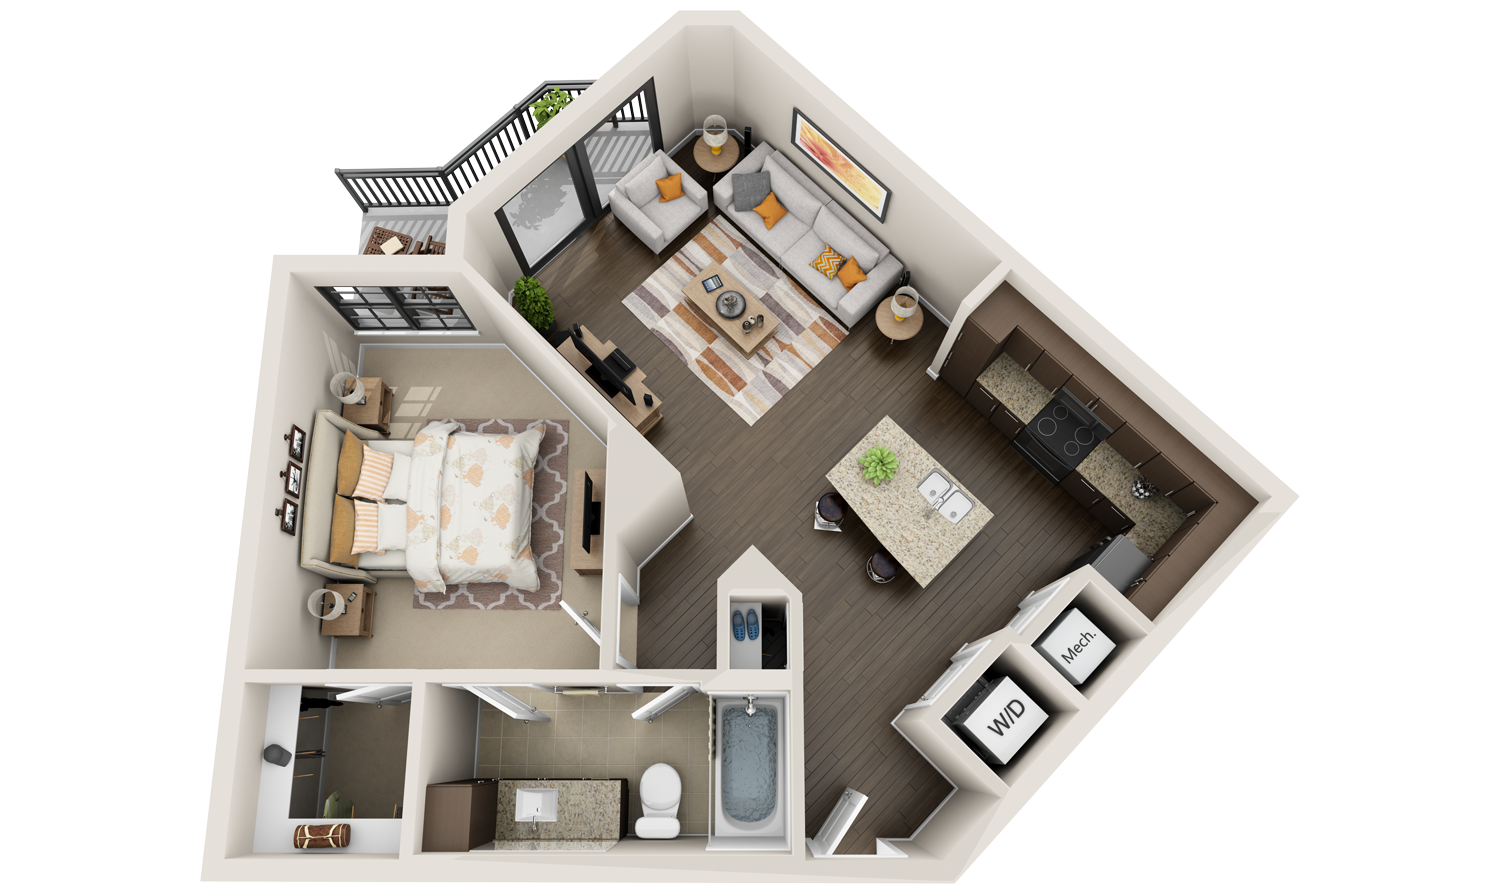 Best 3D Floor Plans For Apartments gt Virtual Tours We